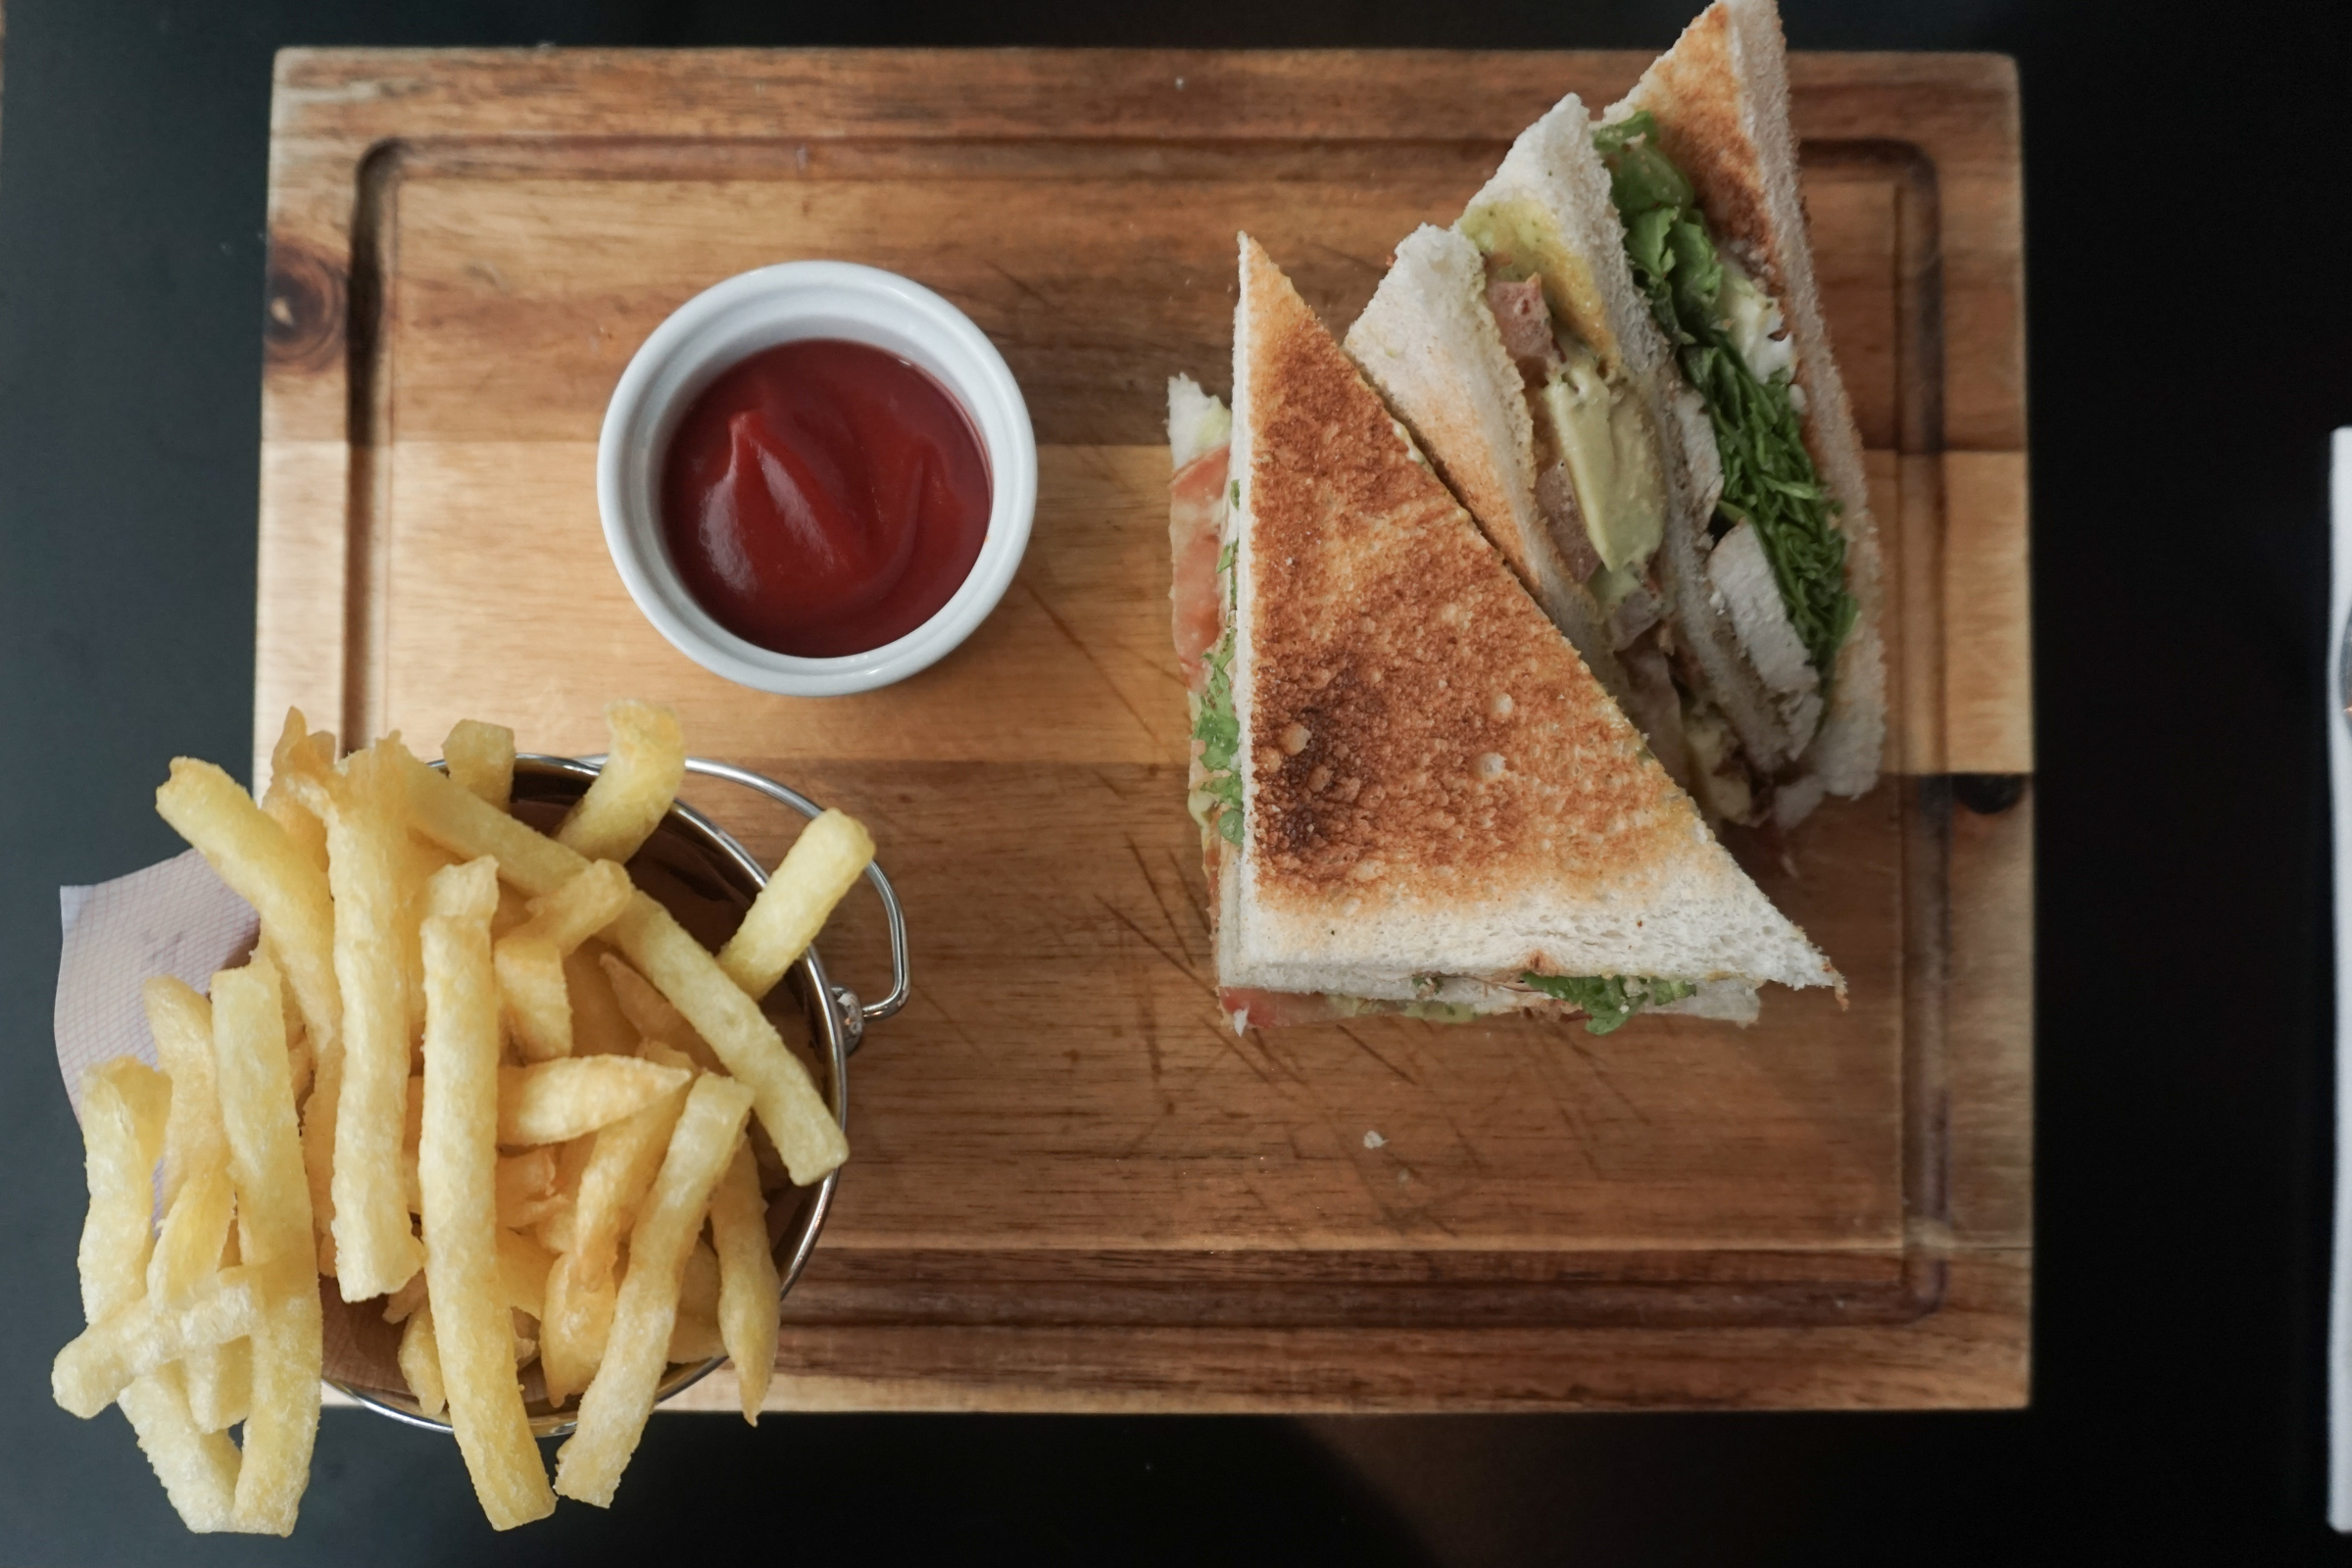 Chicken Club Sandwich: The sandwich looked very good; no wonder, it is their best seller. There are enough choices on sandwiches, including fresh tomato. It was juicy and tasted delicious. I definitely understand why people like it.